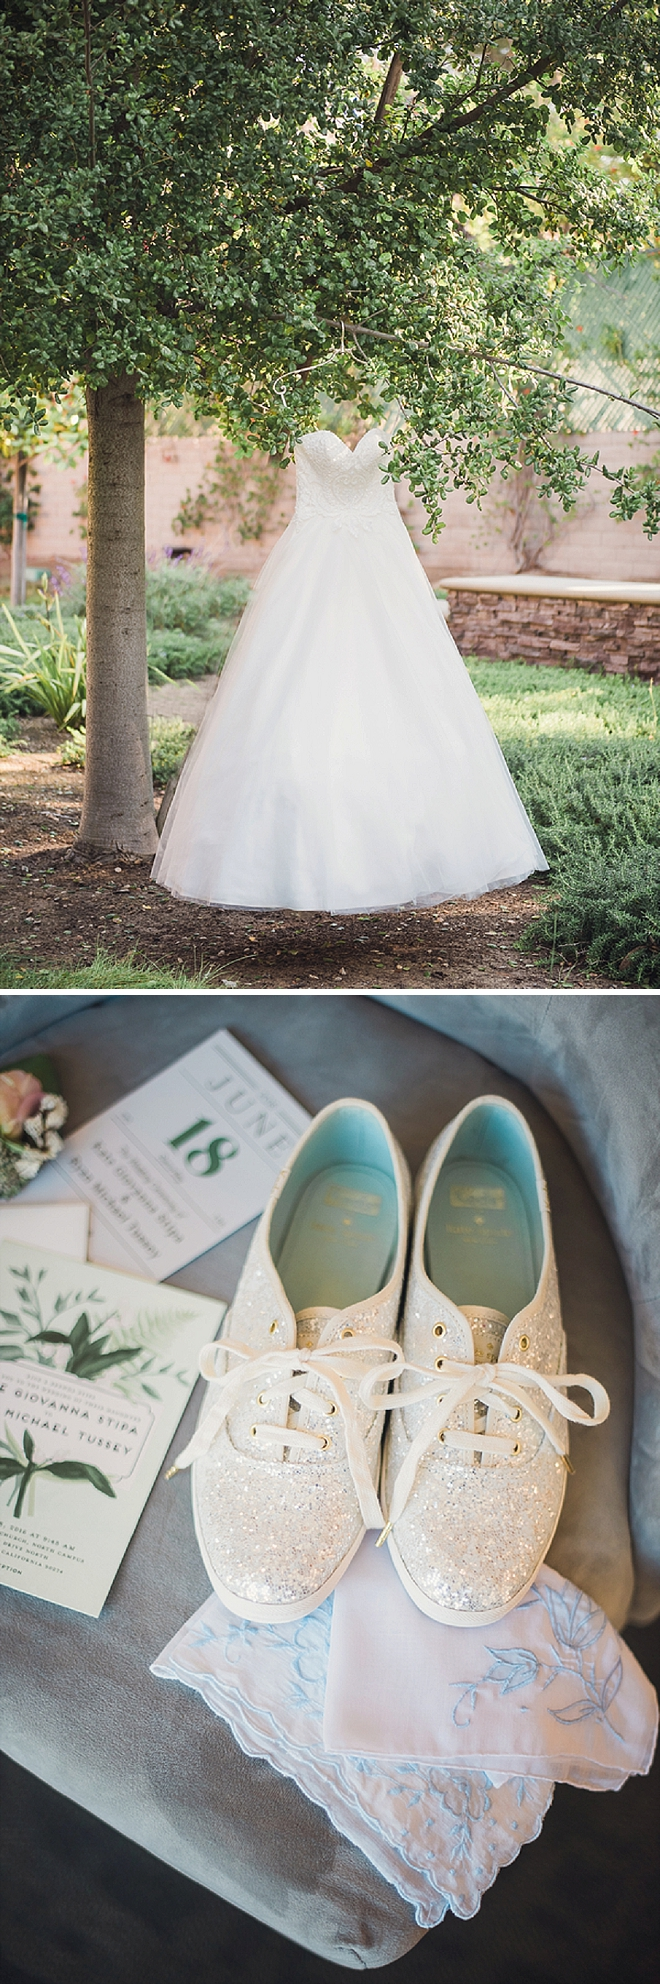 We love this Bride's style and her Kate Spade Keds wedding shoes!